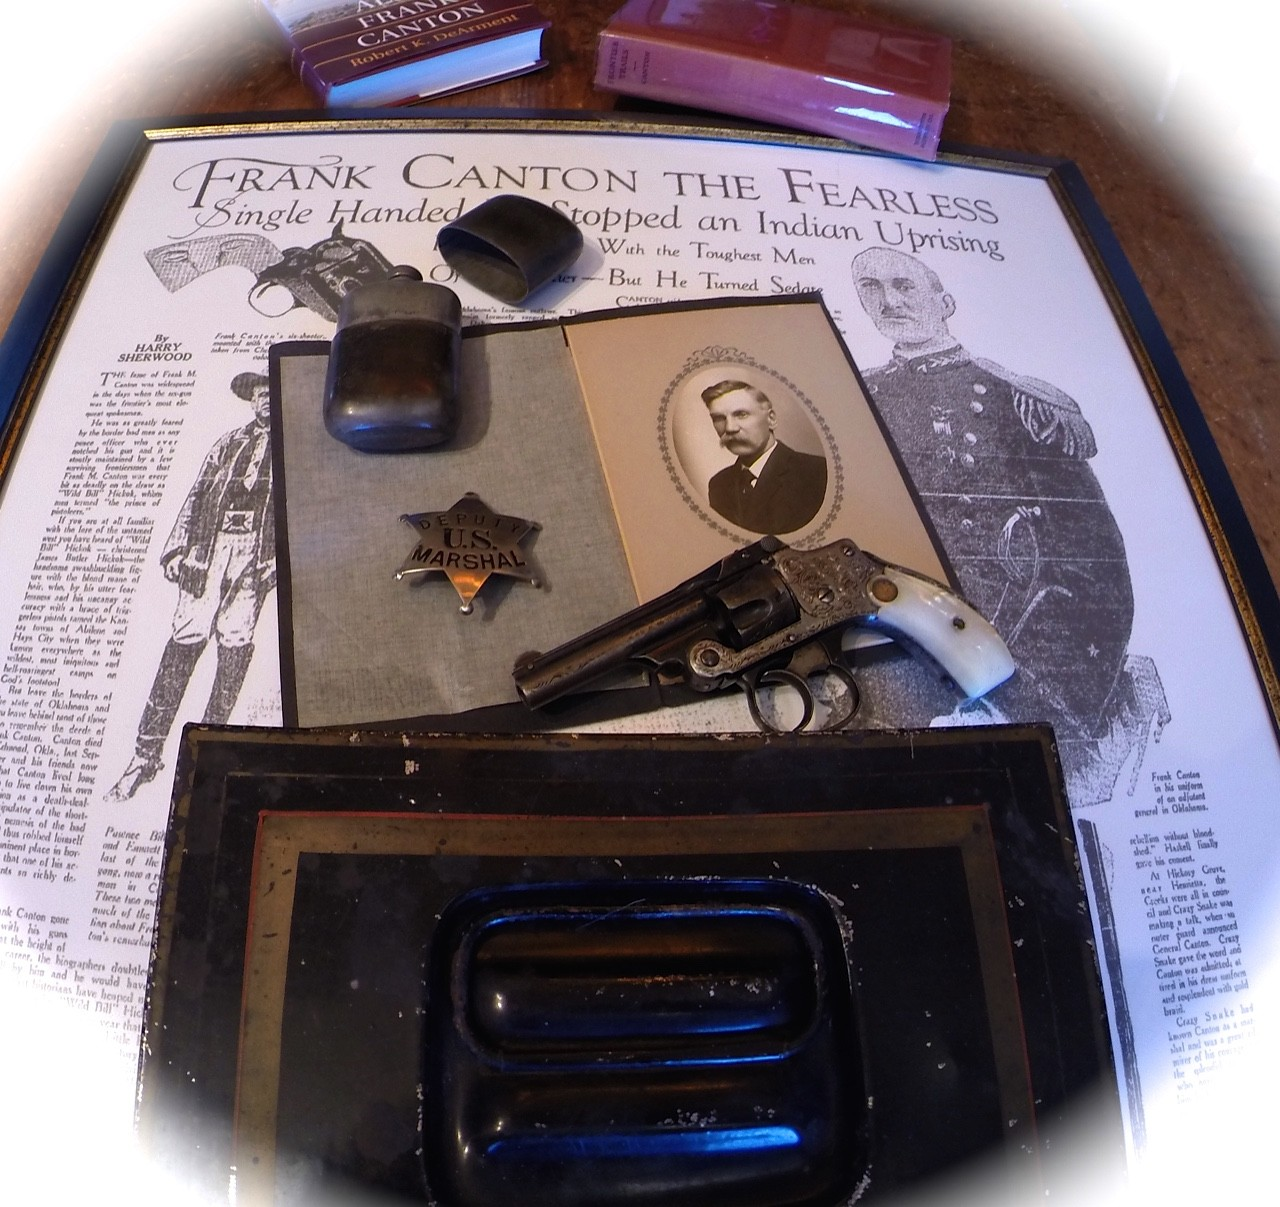 Frank Canton Historical Collection: Old West Lawman Montana, Wyoming, Colorado, Alaskan Gold Rush / Smith & Wesson Pearl Grip Revolver, Badge, Flask, Cash Box and Photo